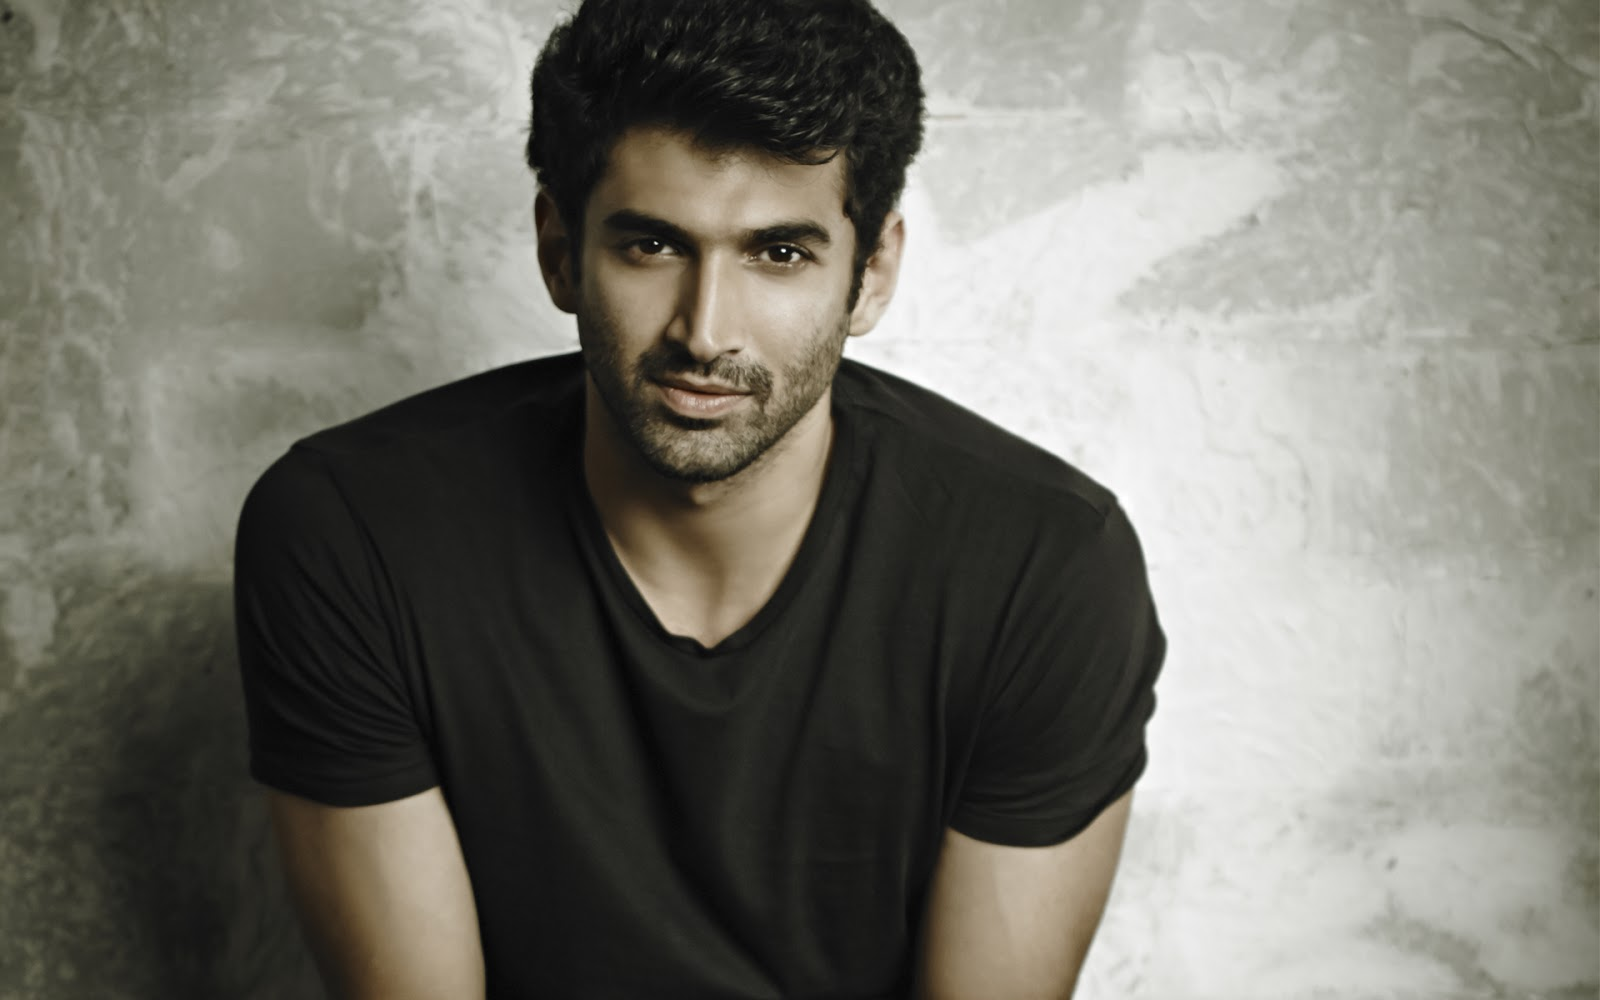 Bollywood Actors Walpaper In 2080p: Best And Hot Bollywood Actor Aditya Roy Kapoor Wide Screen